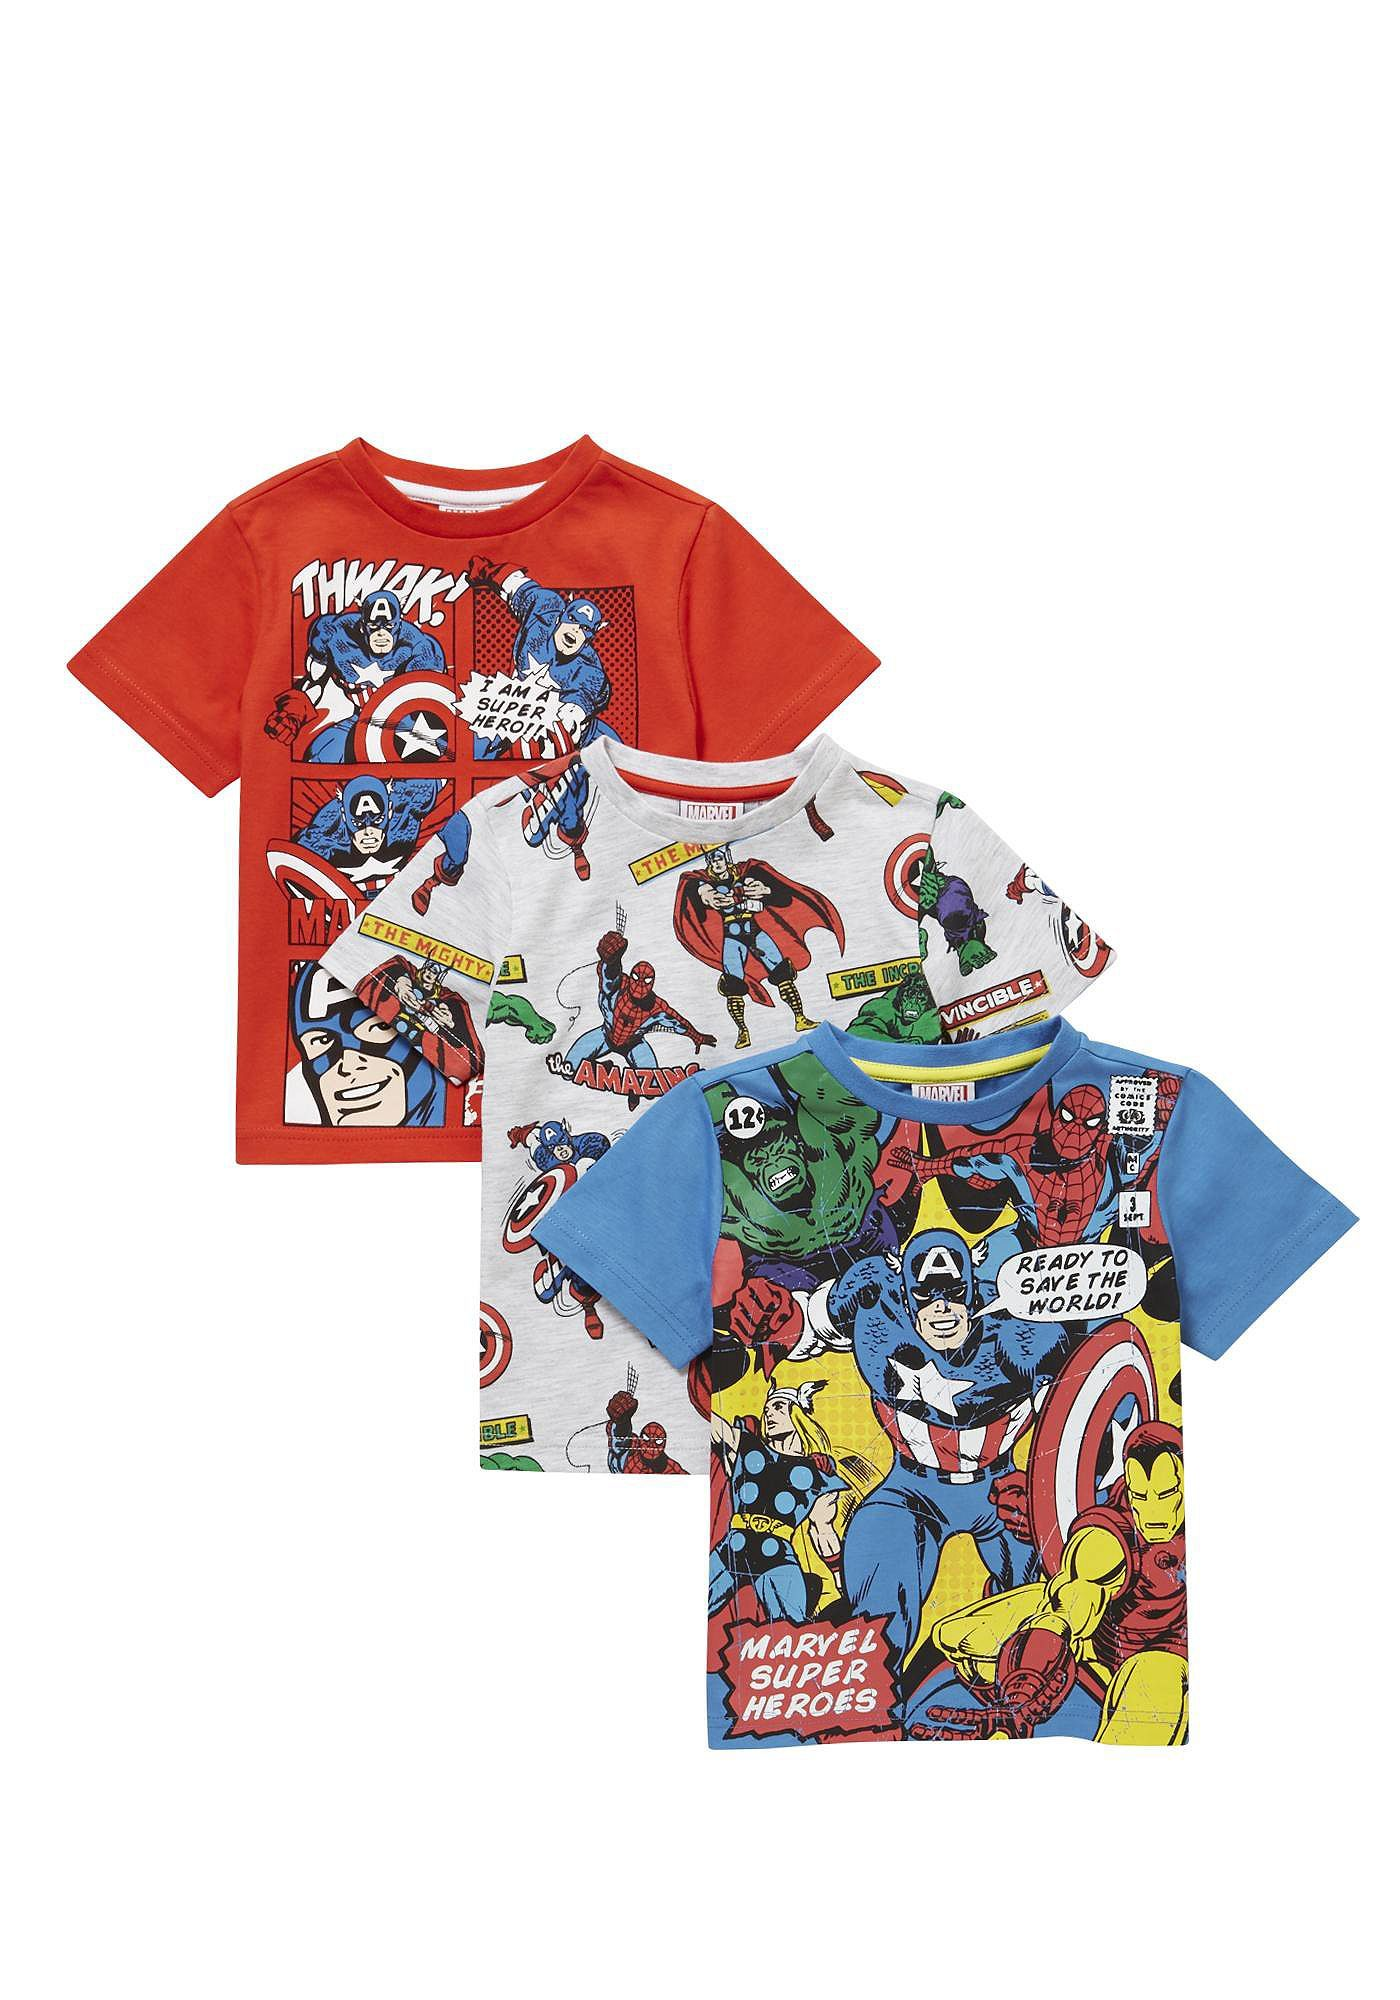 254ad998d8 Tesco direct: Marvel Avengers 3 Pack of T-Shirts | License | T shirt ...